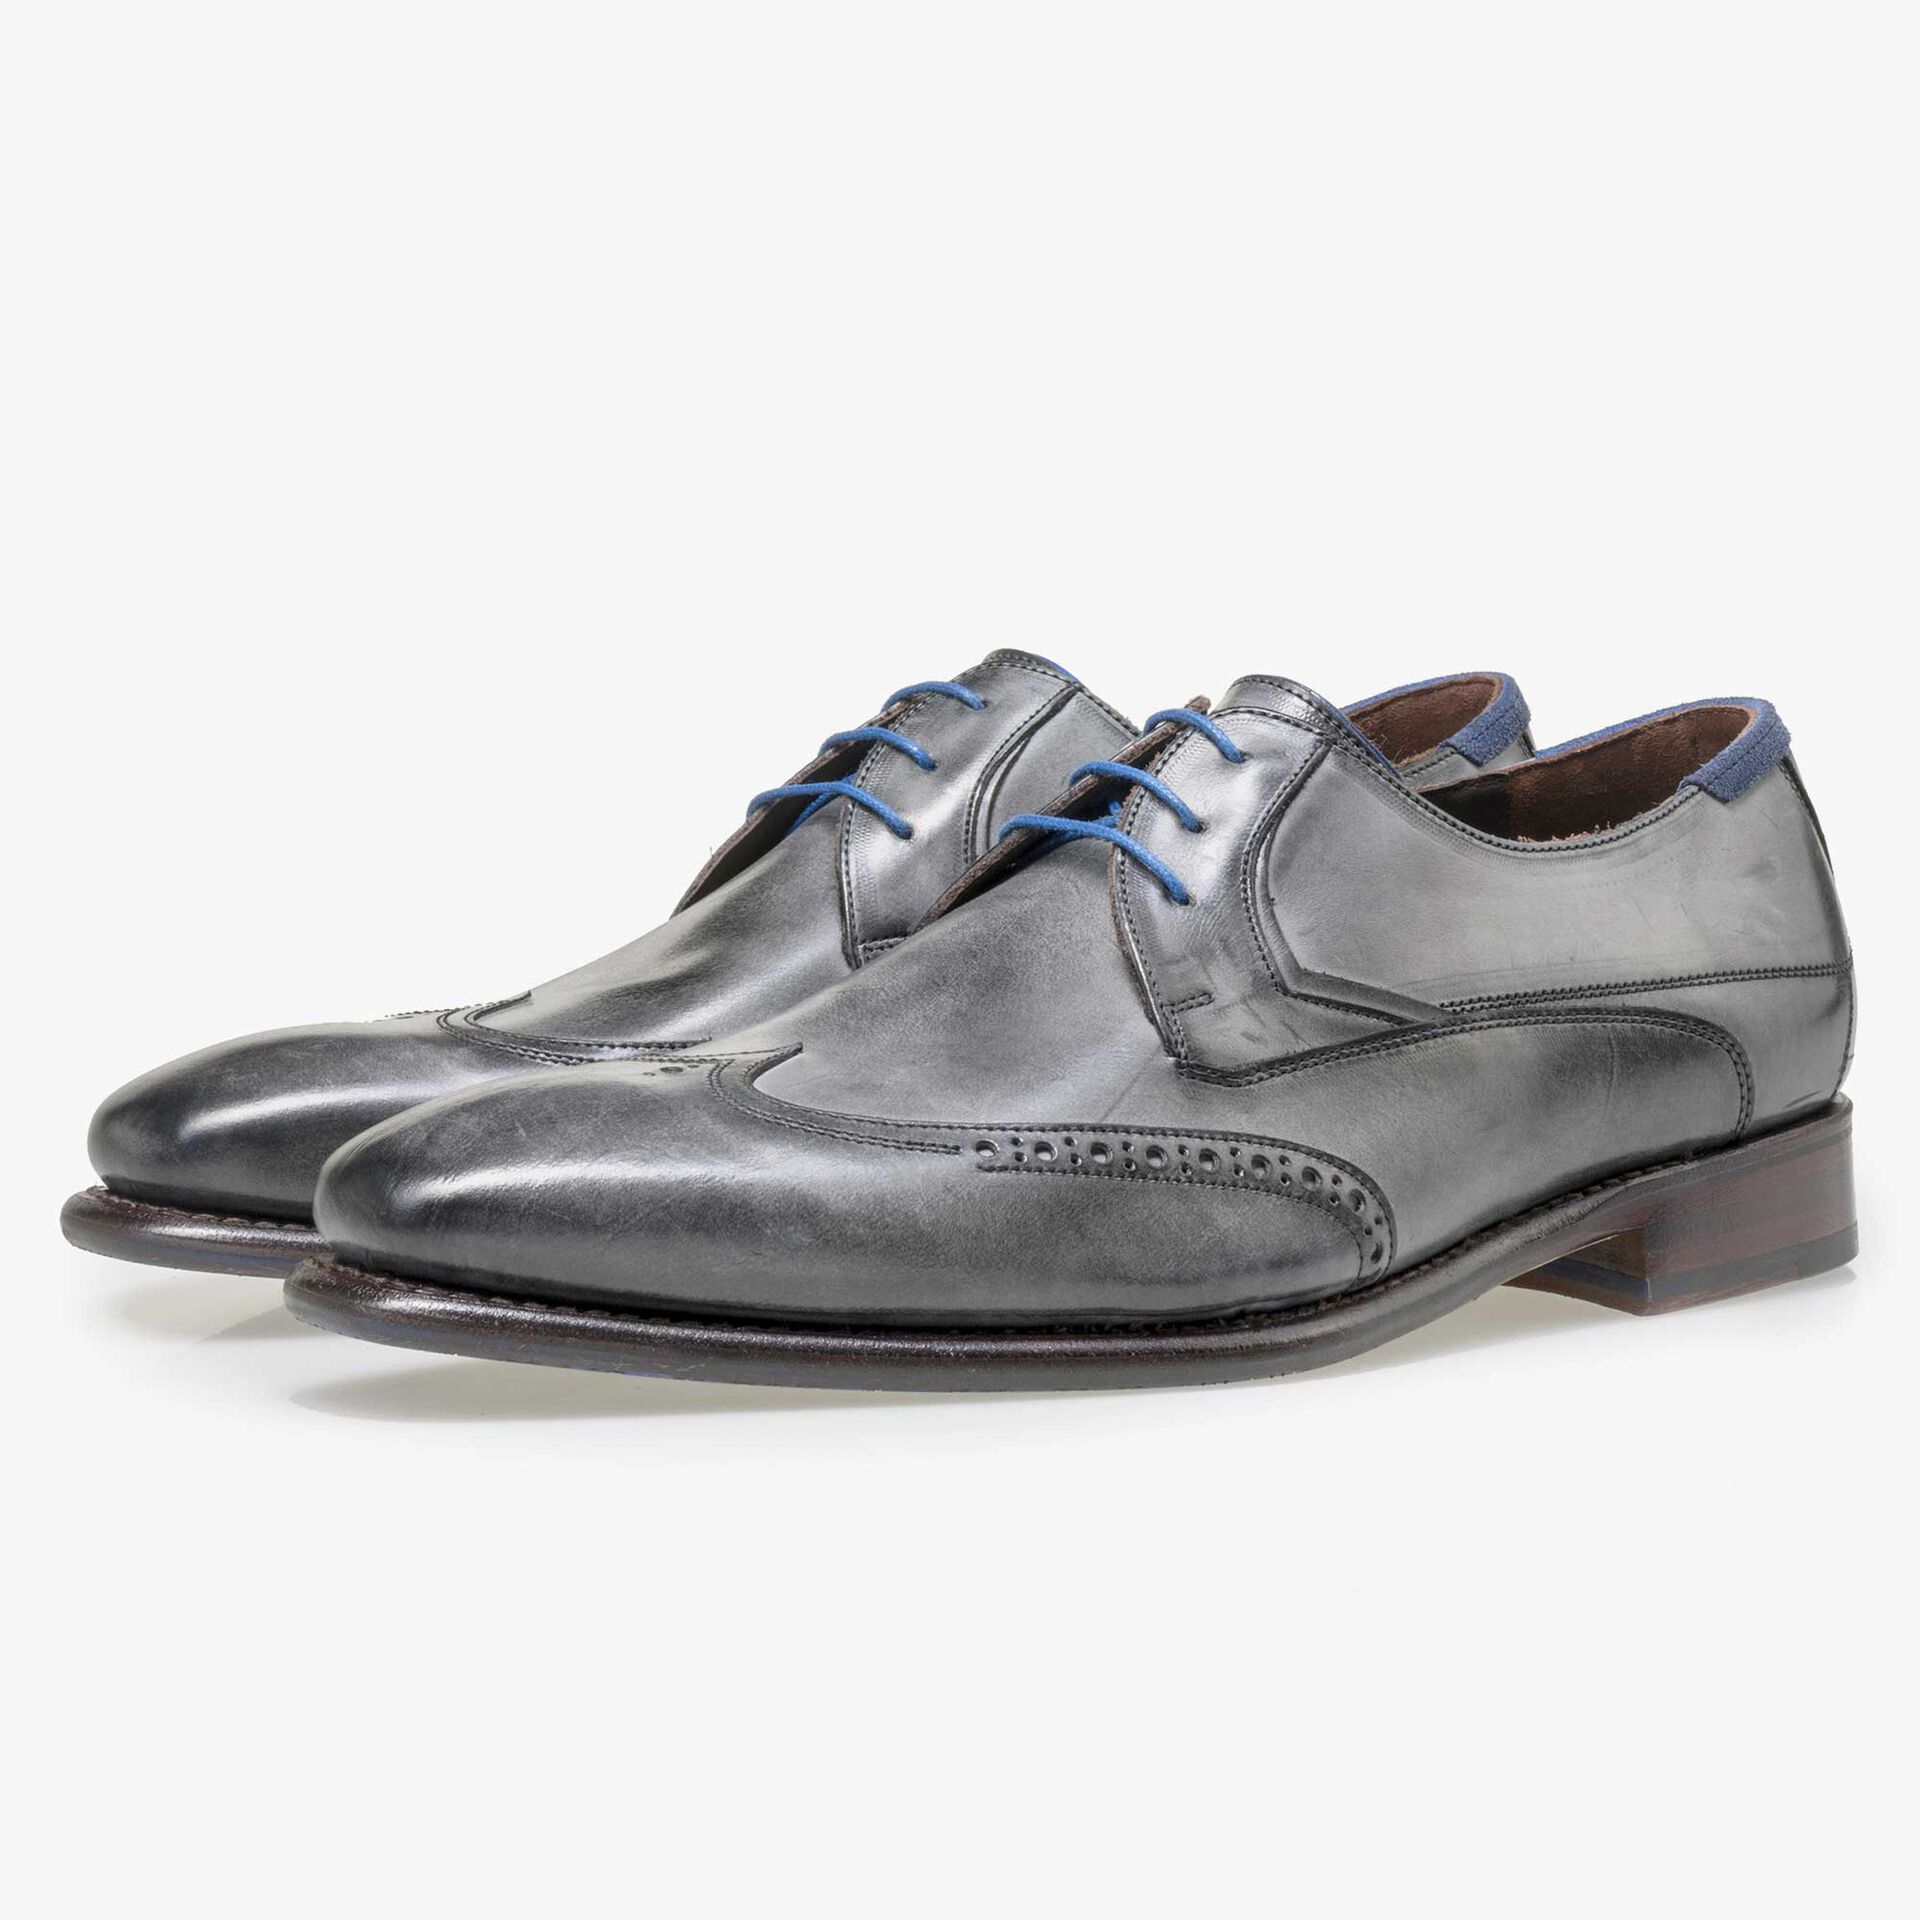 Floris van Bommel men's anthracite grey leather lace shoe